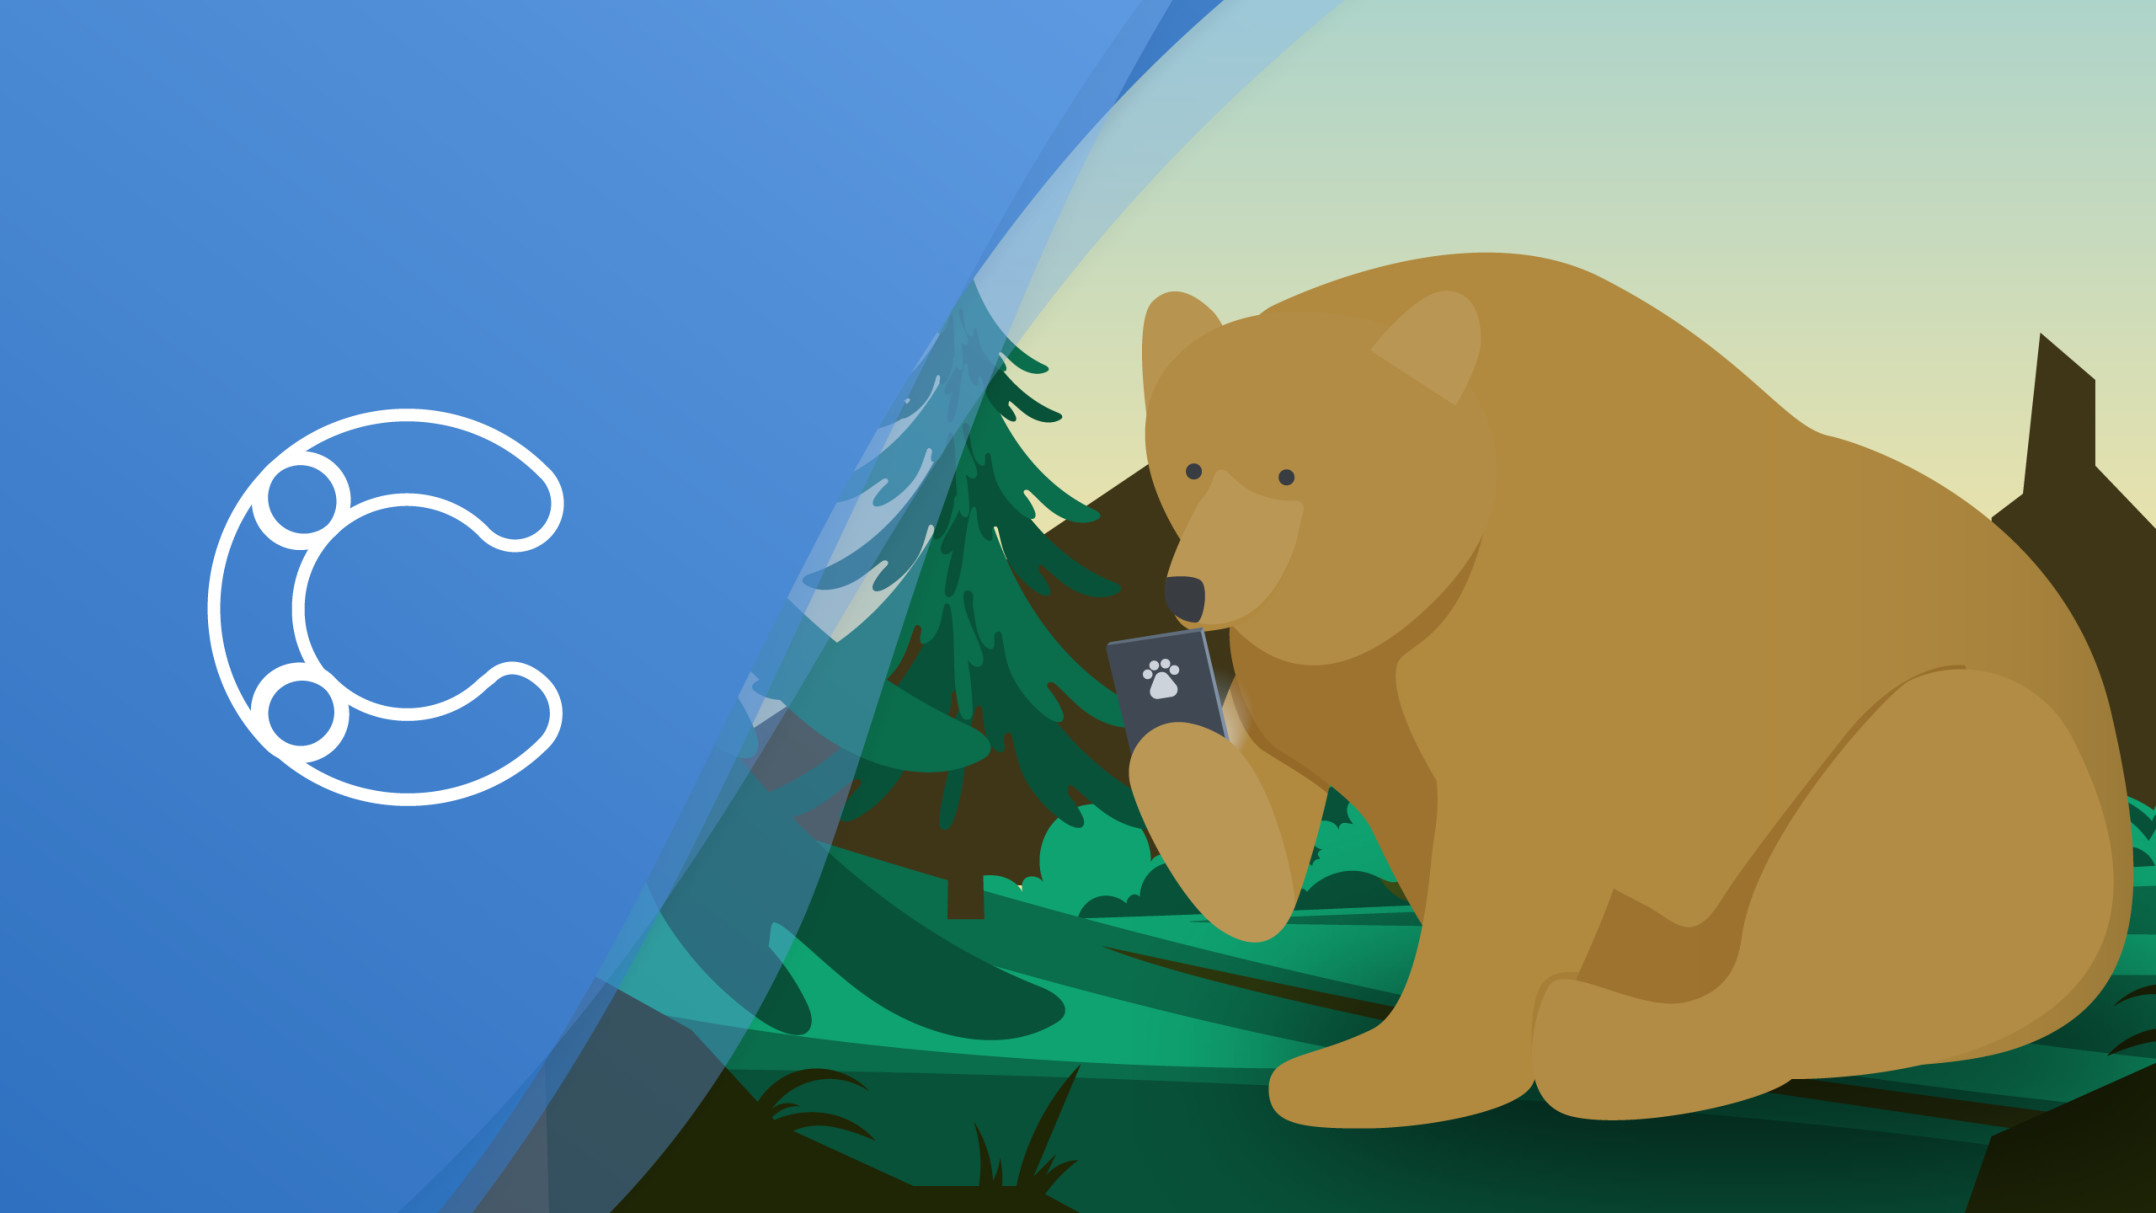 Using fat bears to explain my take on the future of digital.